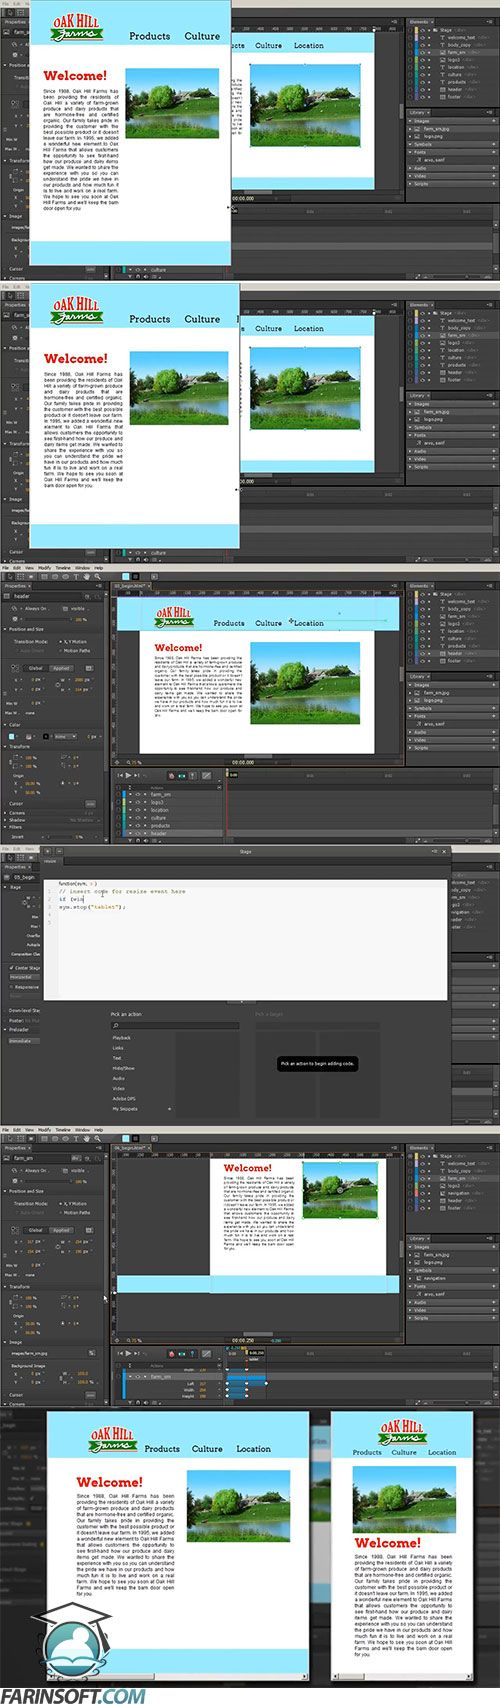 Getting-More-Responsiveness-from-Your-Page-in-Edge-Animate